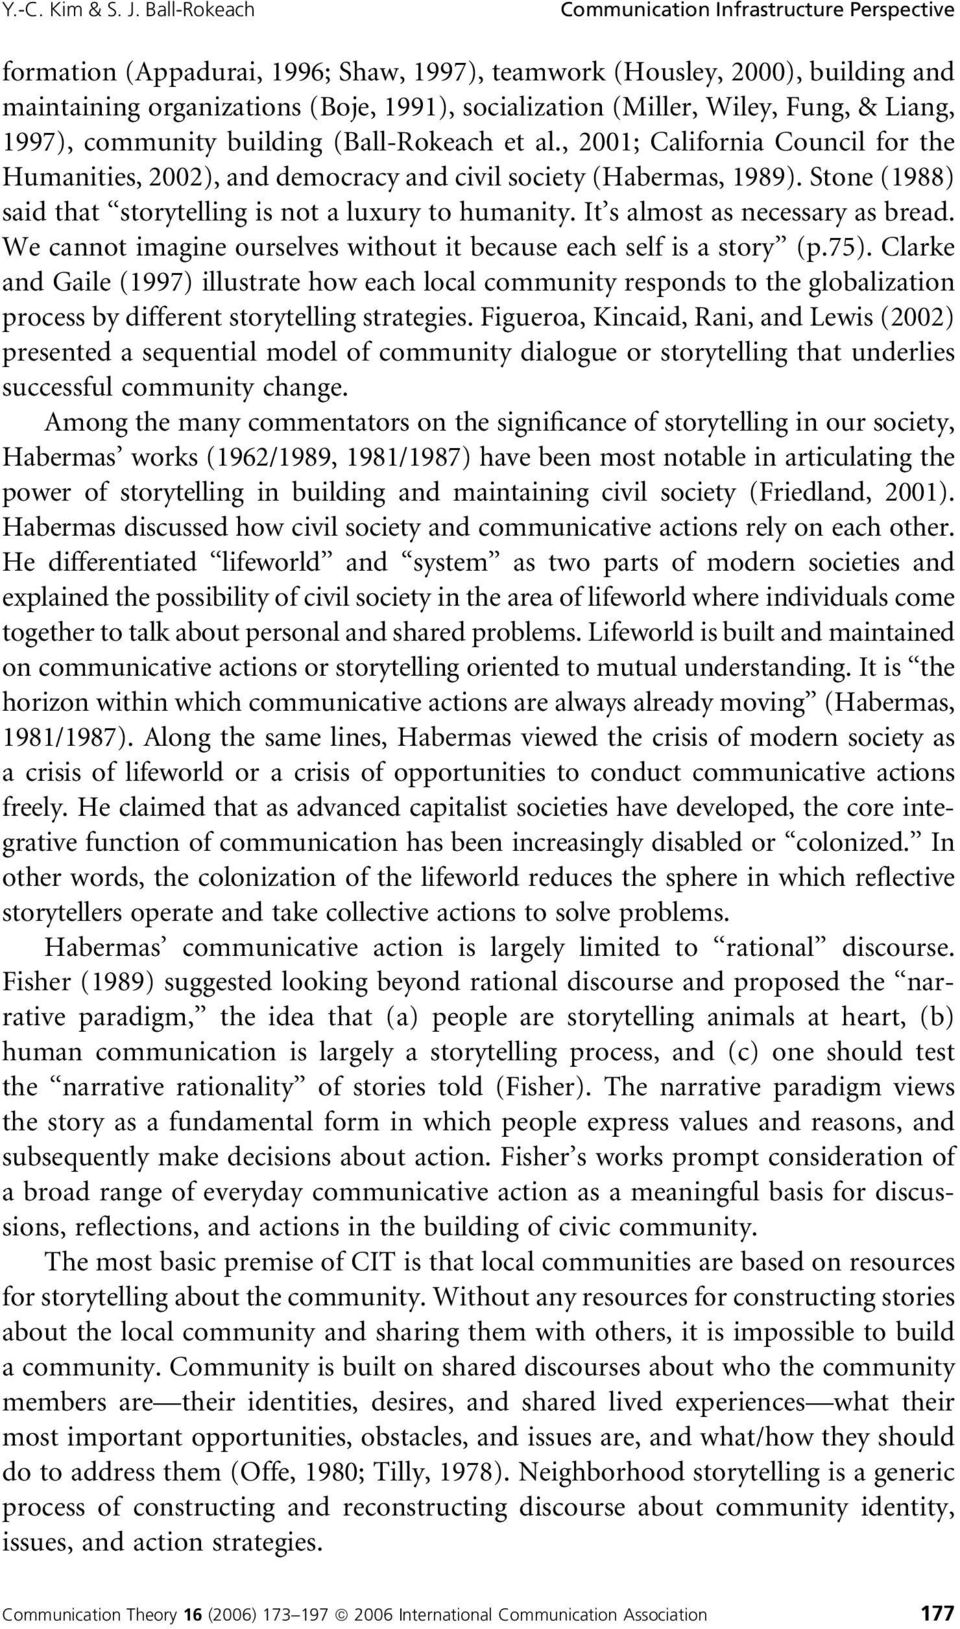 Wiley, Fung, & Liang, 1997), community building (Ball-Rokeach et al., 2001; California Council for the Humanities, 2002), and democracy and civil society (Habermas, 1989).